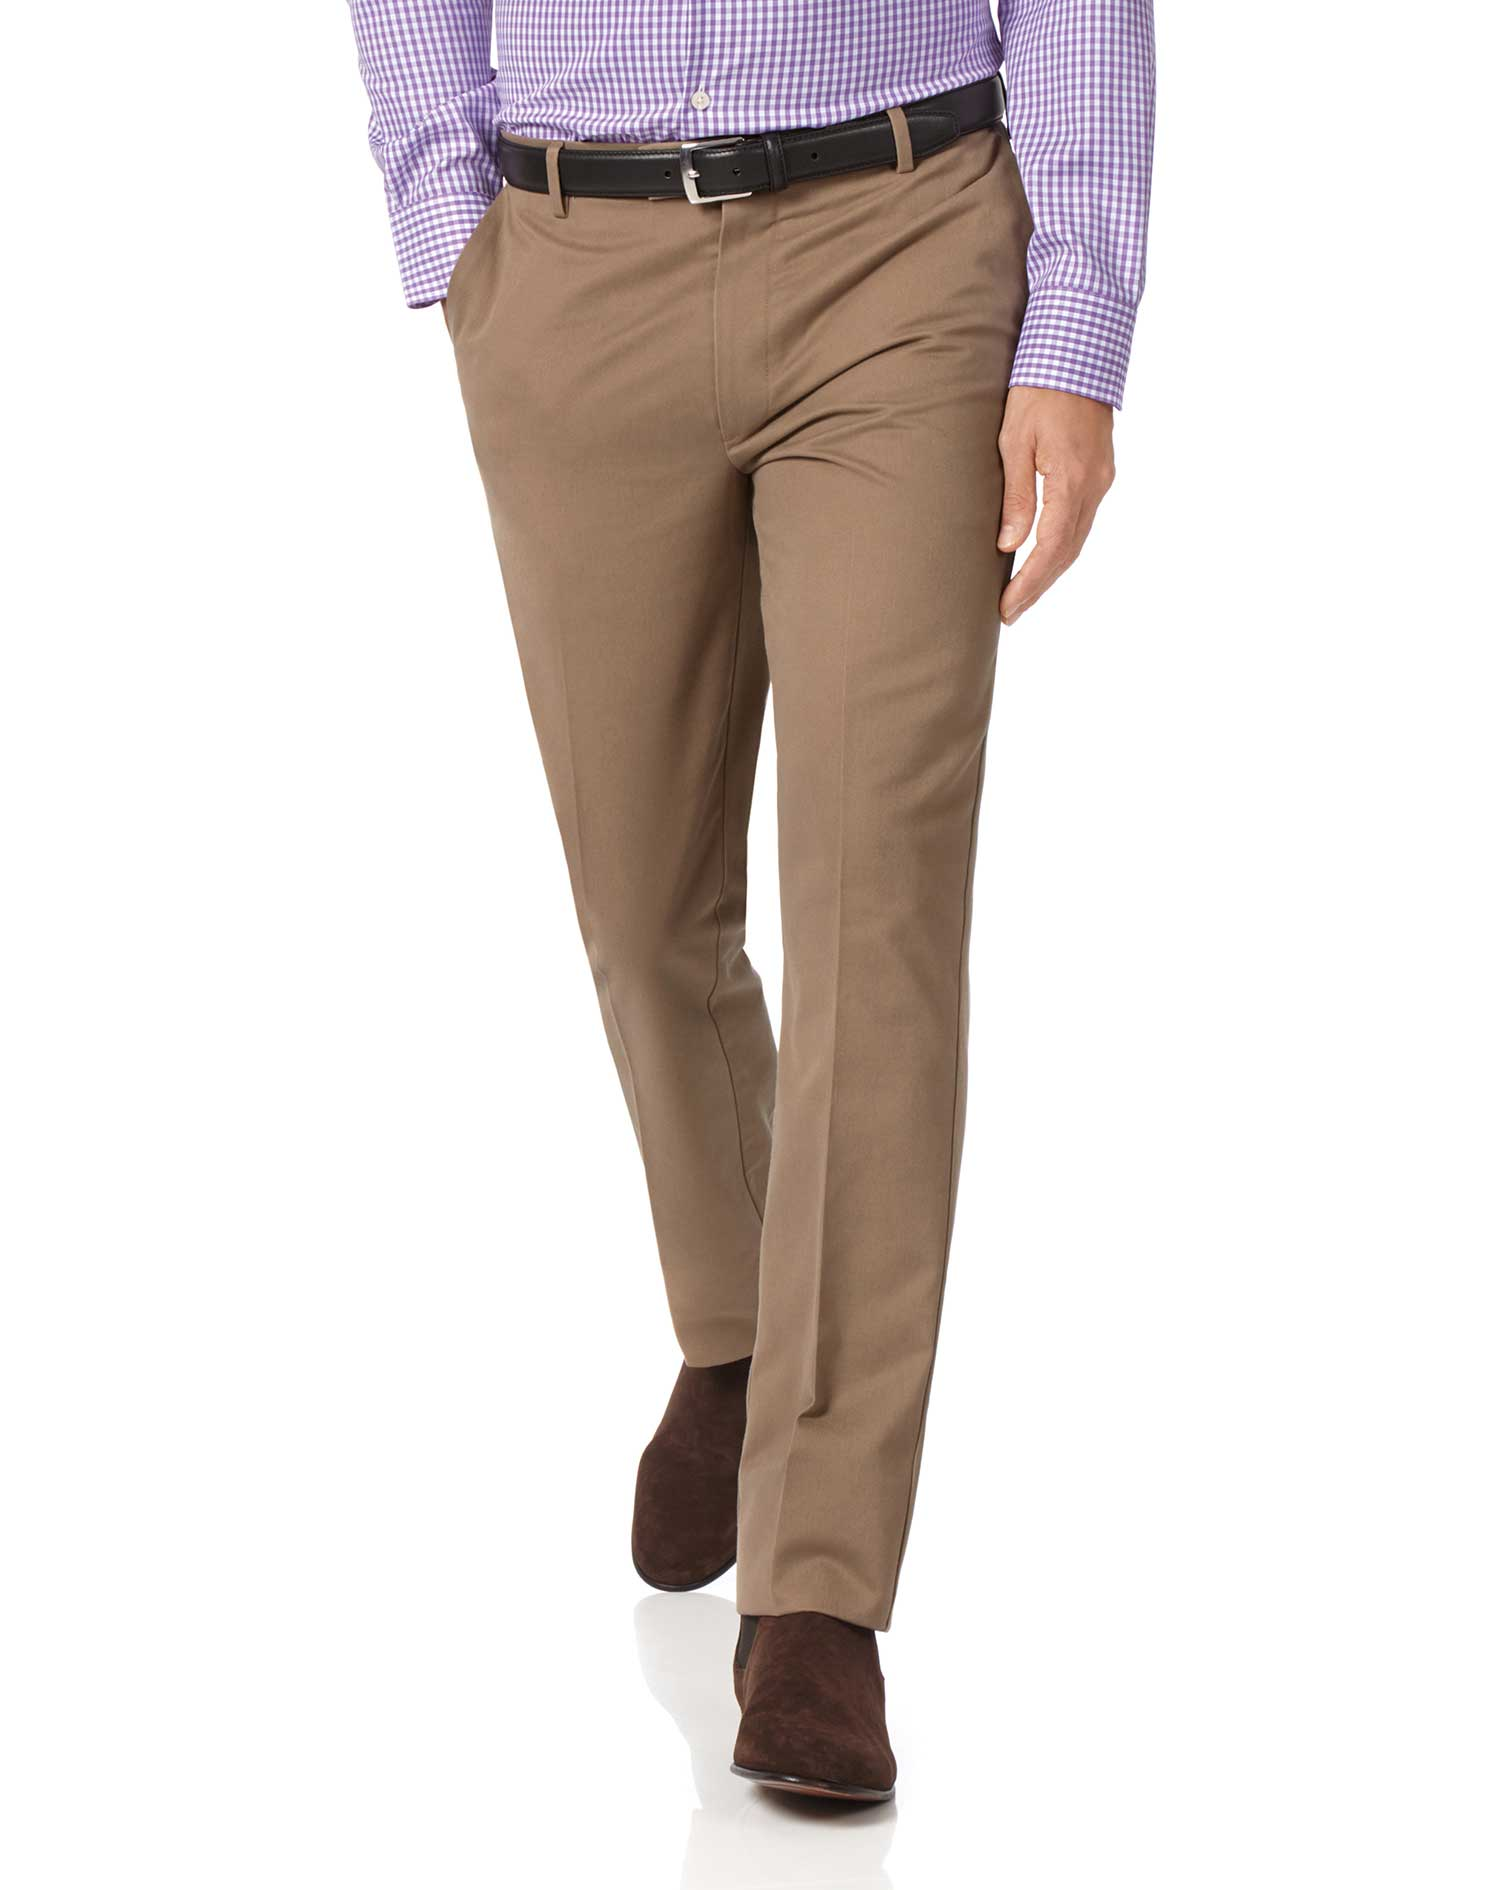 Tan Extra Slim Fit Flat Front Non-Iron Cotton Chino Trousers Size W36 L34 by Charles Tyrwhitt